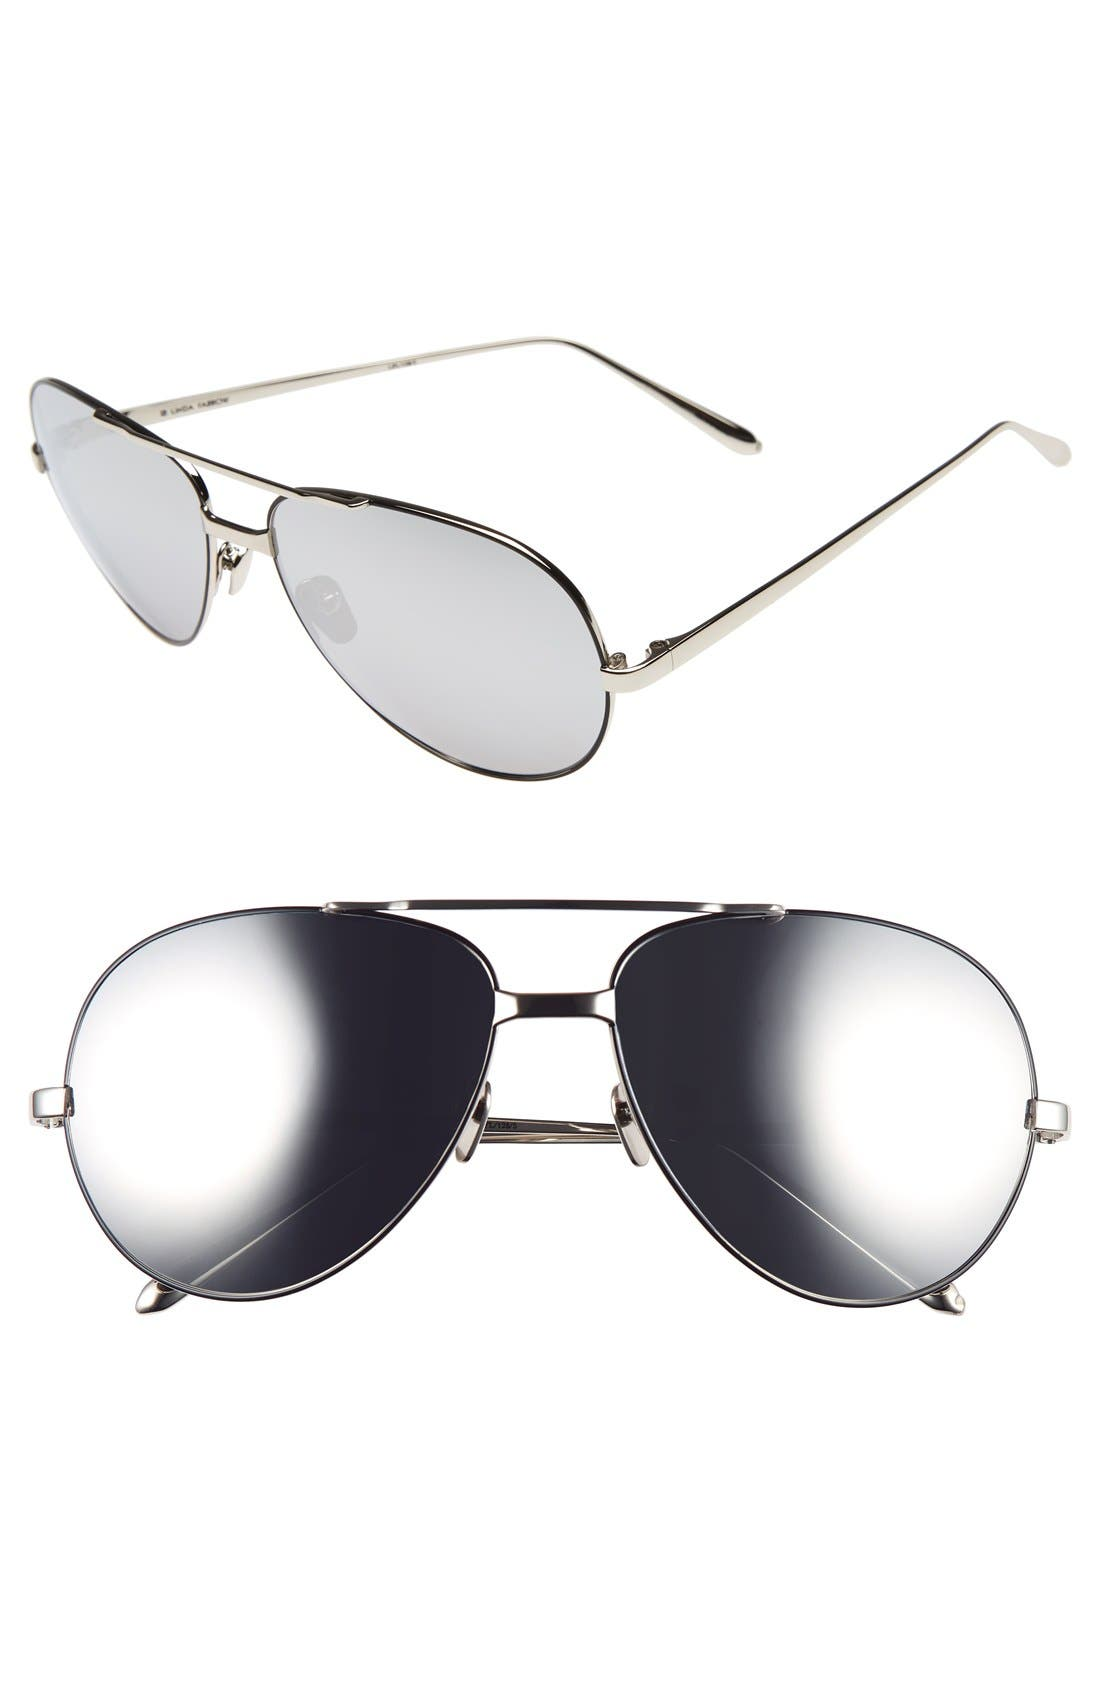 Main Image - Linda Farrow 59mm 18 Karat White Gold Trim Aviator Sunglasses